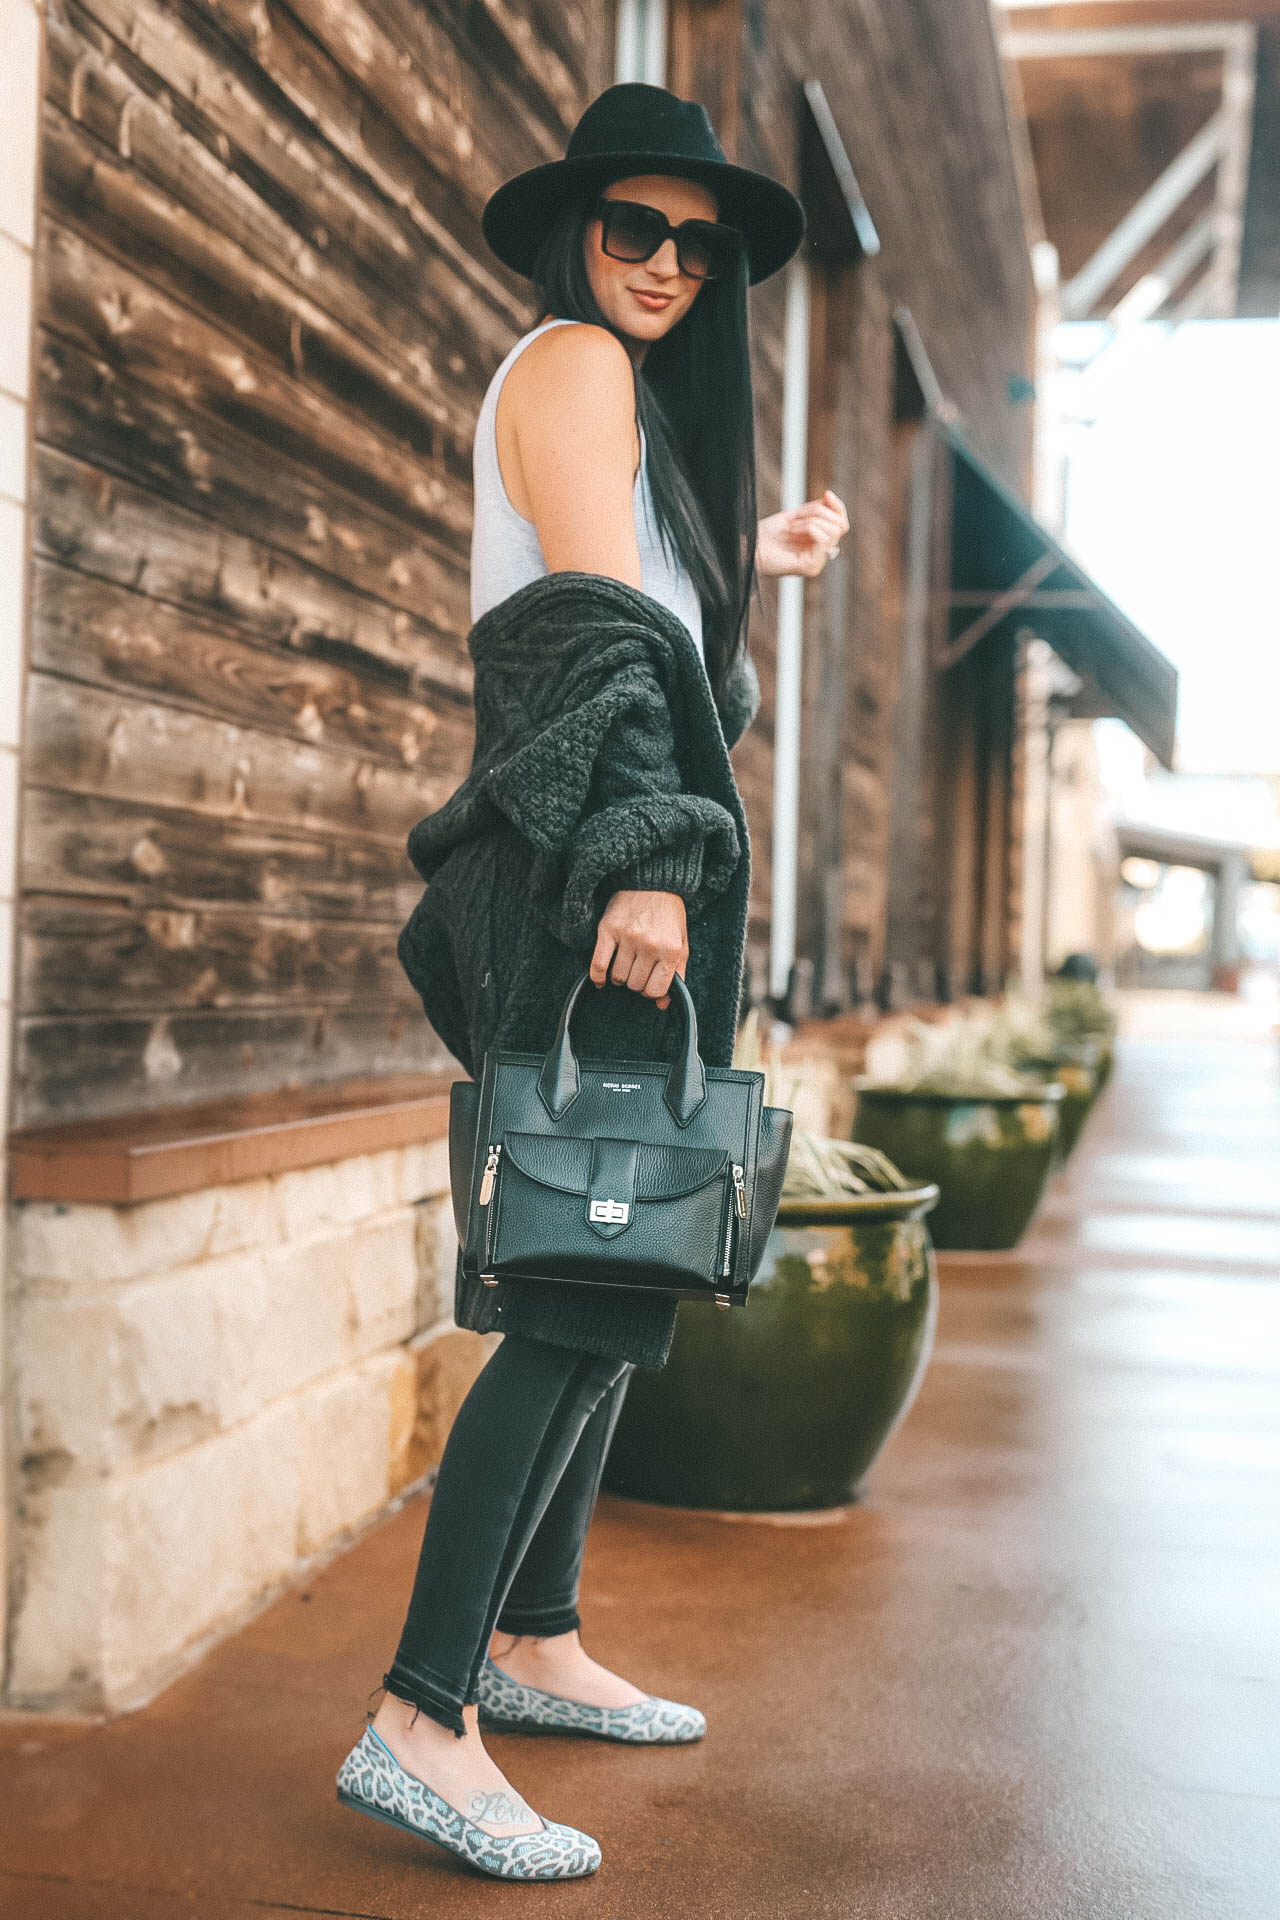 multiple ways to wear Rothy's flats and if they are worth the hype. Machine washable and made out of recycled water bottles they are a chic shoe saving the planet. | Rothy's Flats featured by popular Austin fashion blogger Dressed to Kill